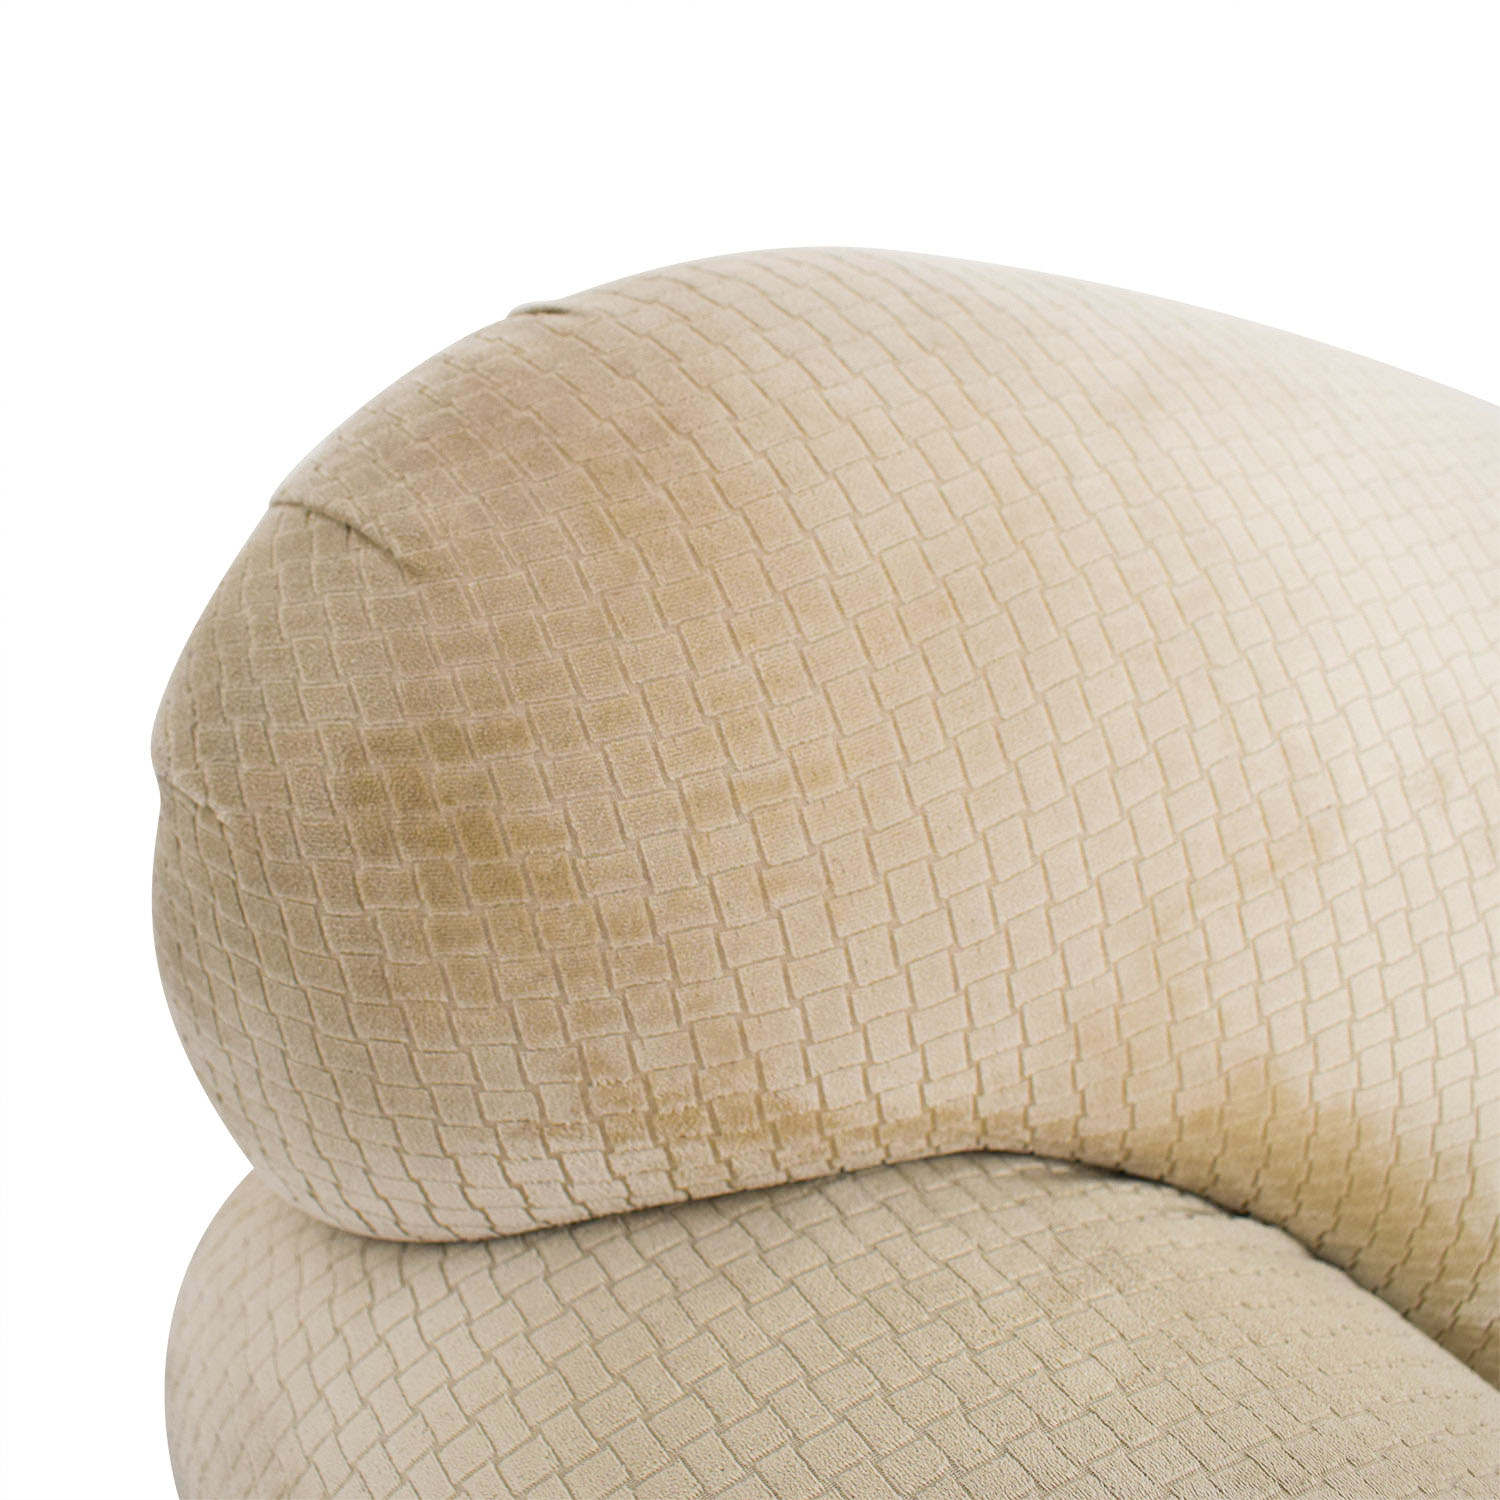 Fainting Chaise Lounge on sale